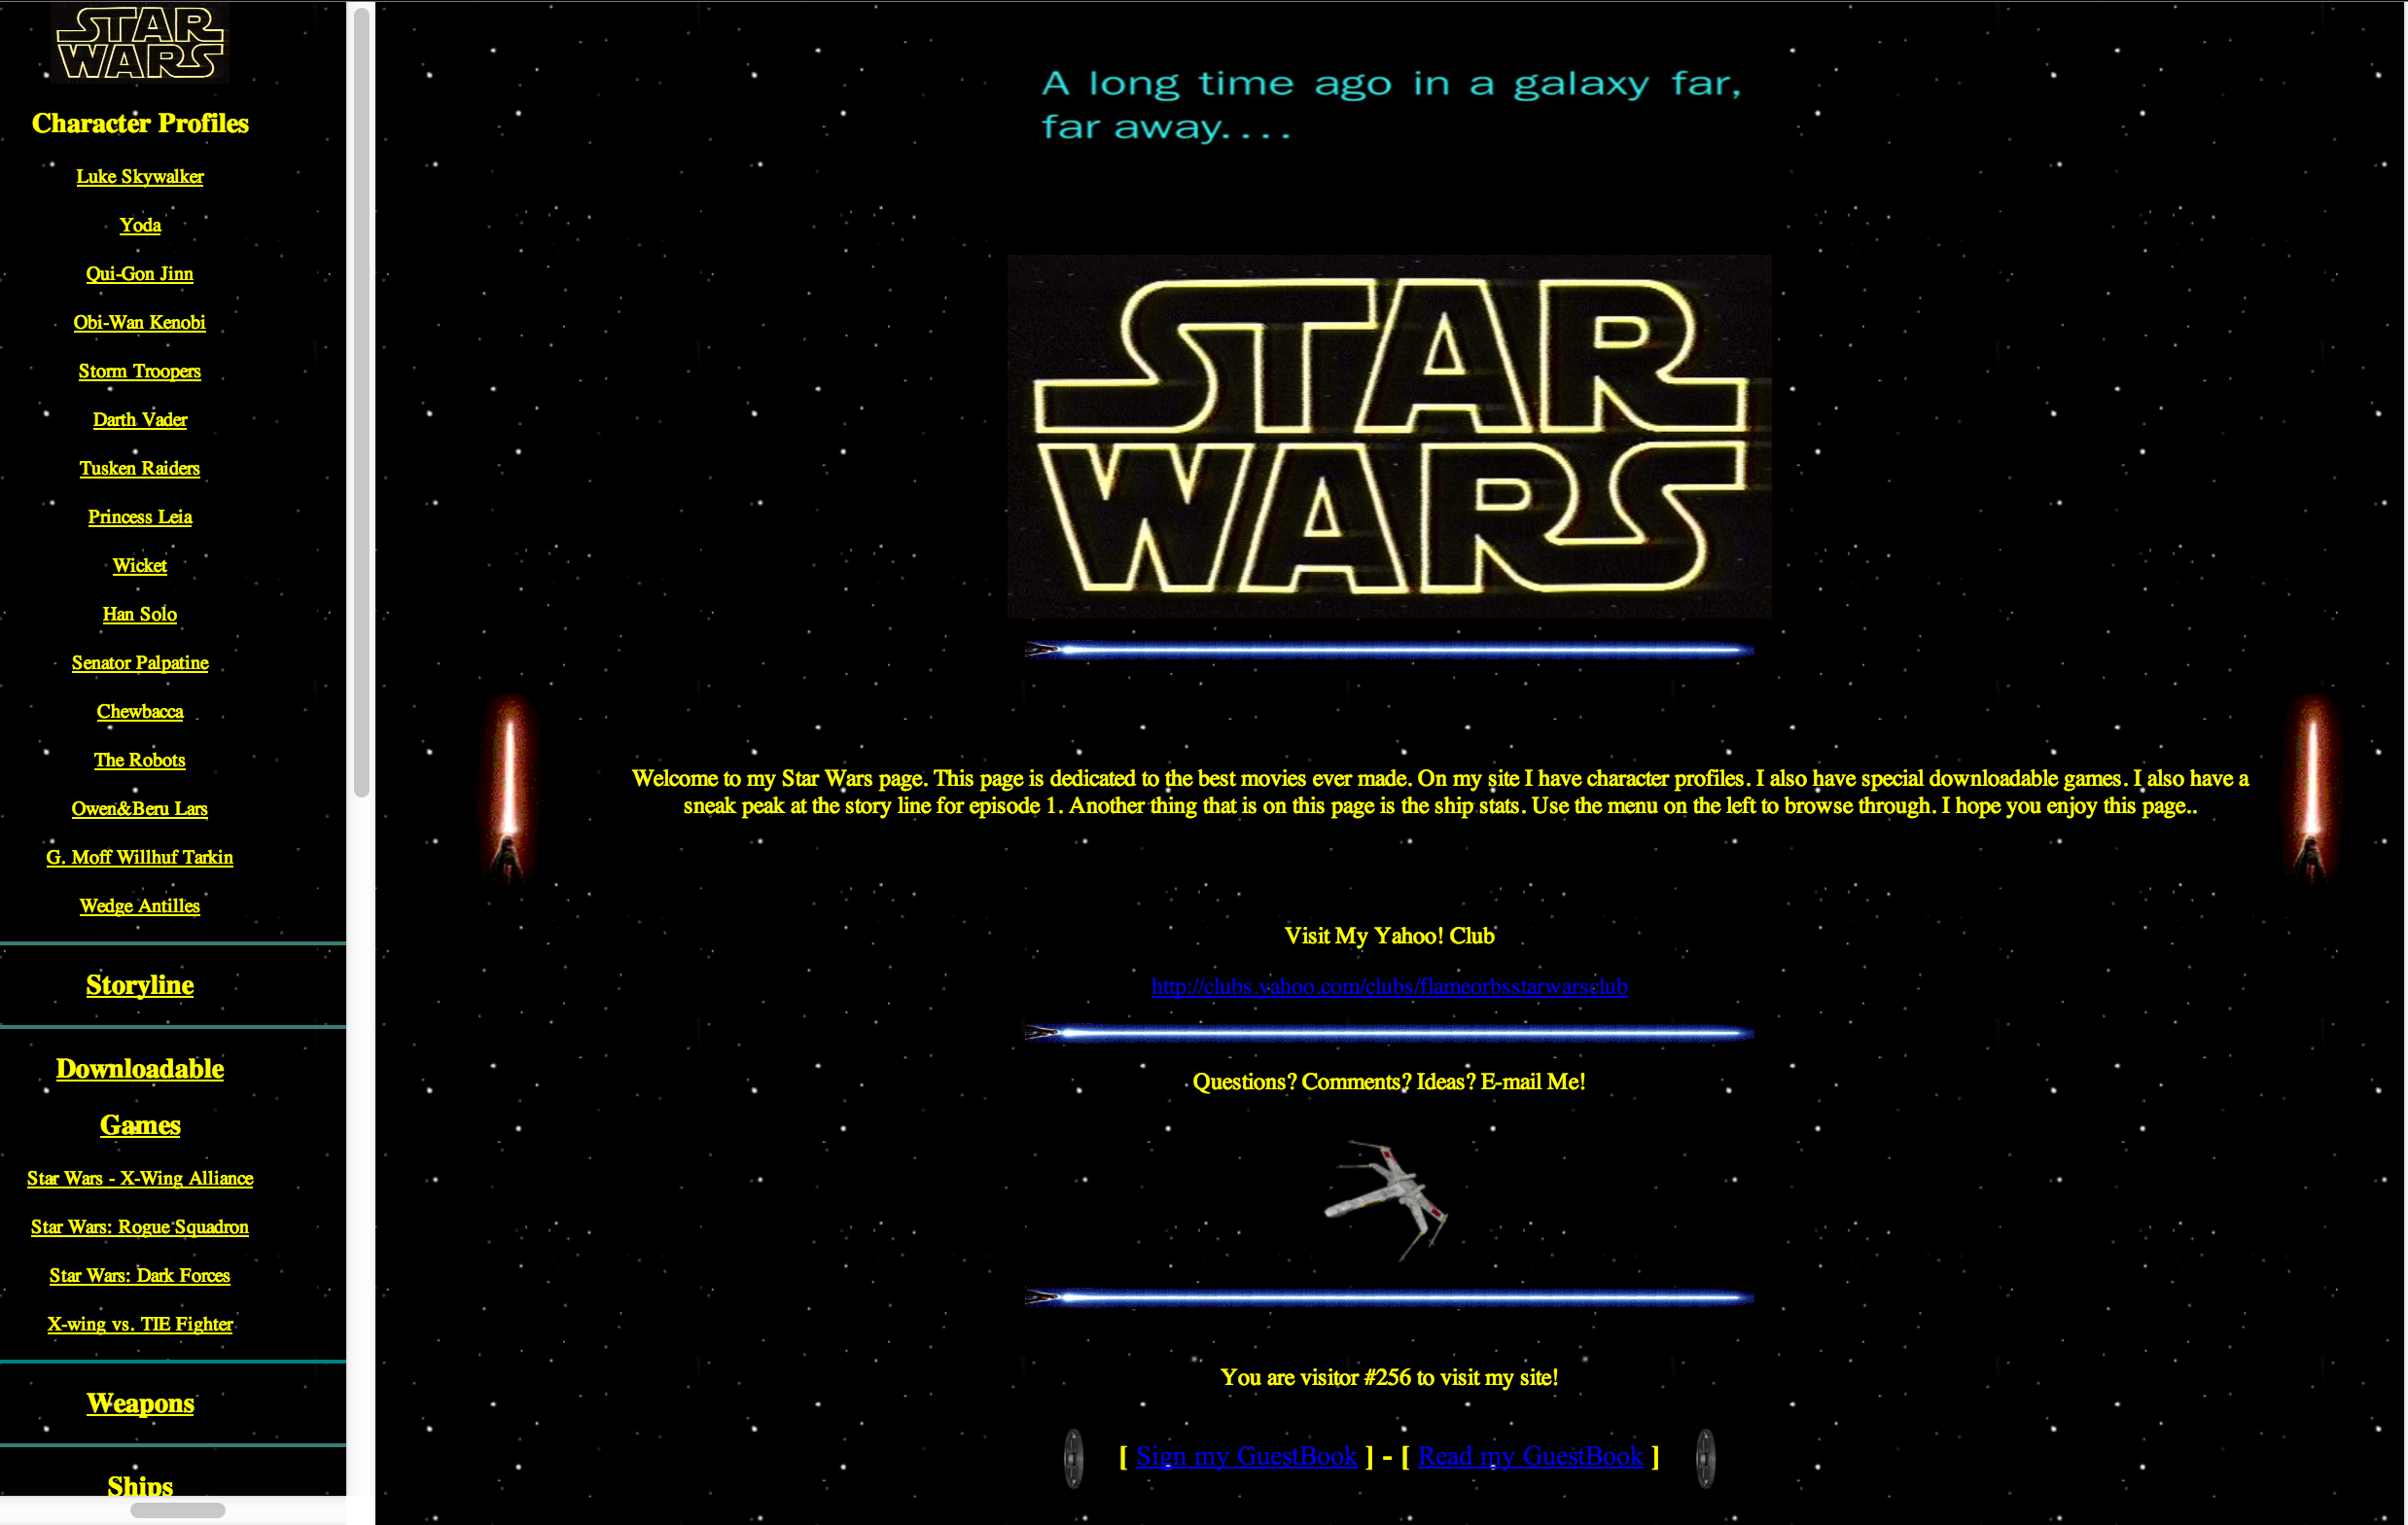 Star Wars Restoration: Home Page Finished